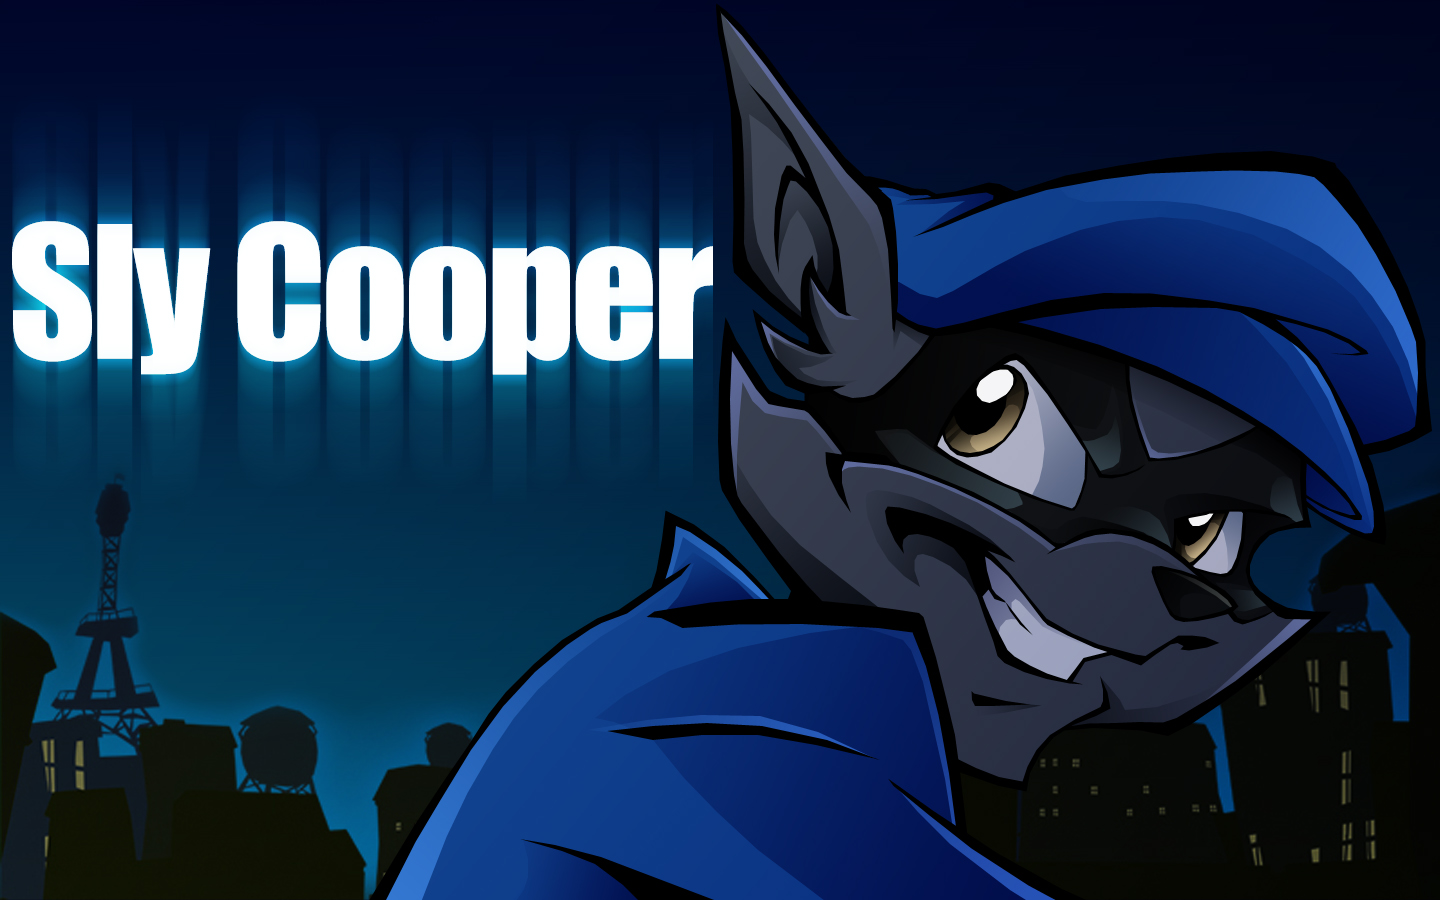 Sly_Cooper_The_Master_Thief_by_jostnic